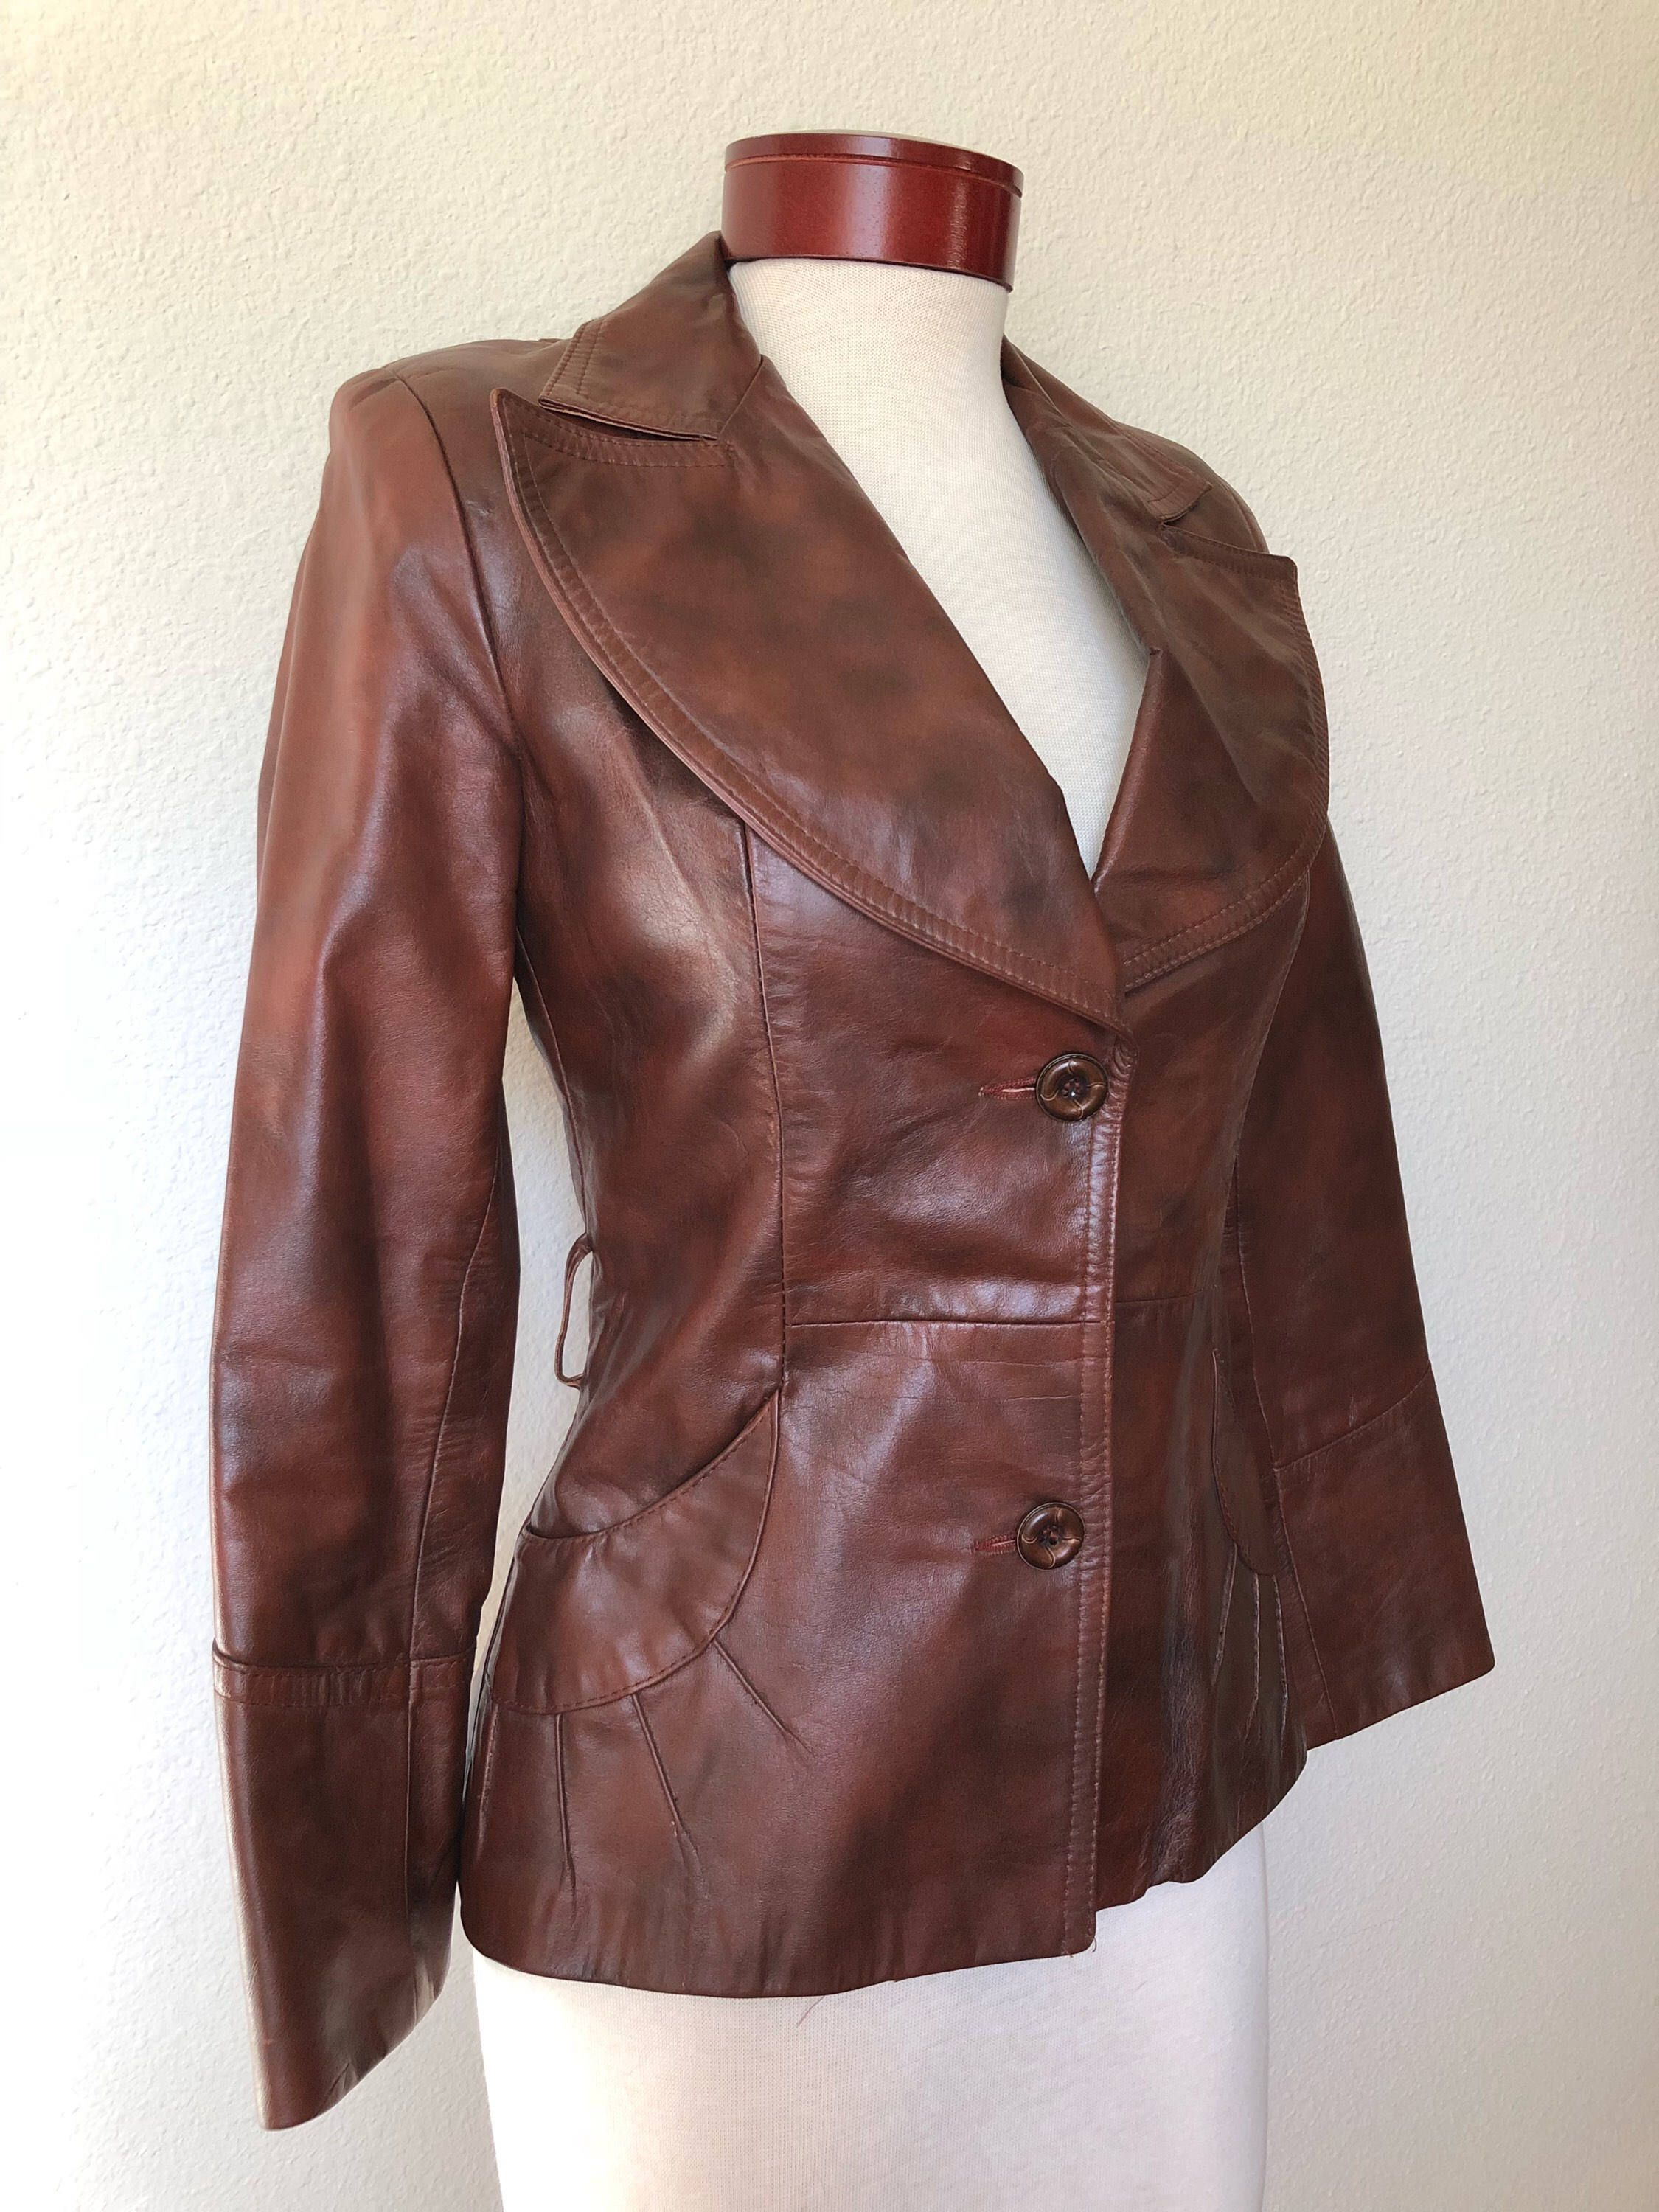 Vintage 70s Brown Leather Jacket Fitted Steampunk 1970s Gassy Etsy Leather Jacket Brown Leather Jacket Outfit Dark Brown Leather Jacket [ 3000 x 2250 Pixel ]